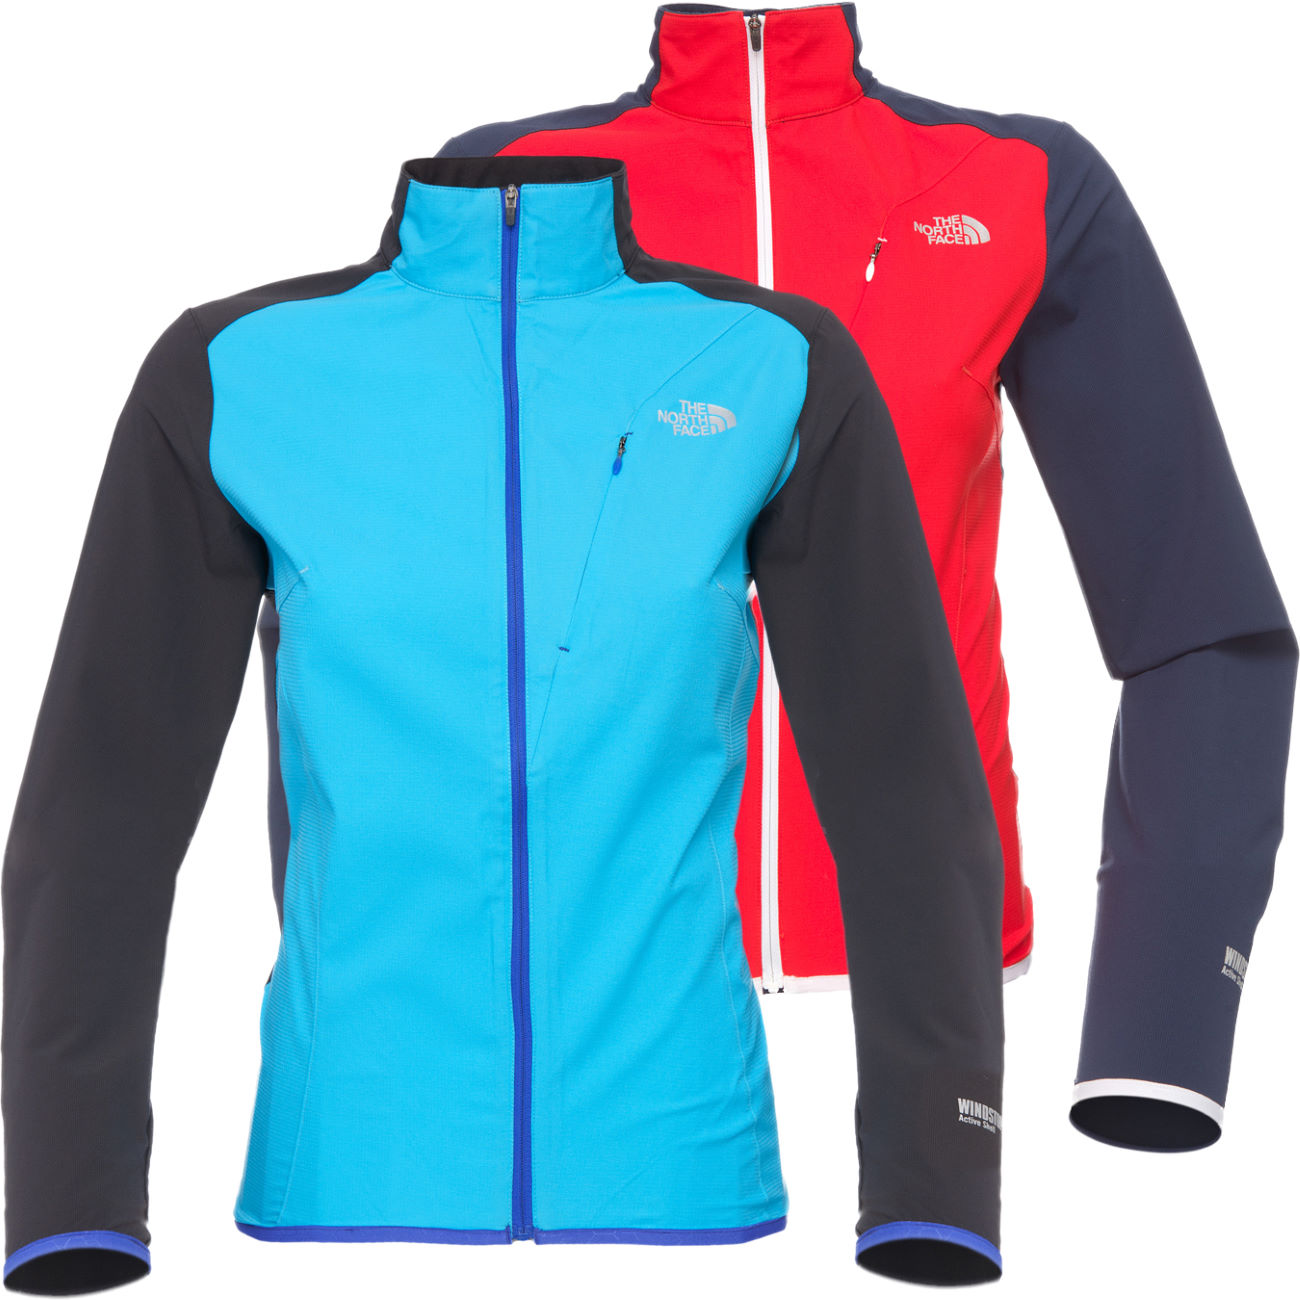 Coupe vents v lo the north face ladies puddle jacket wiggle france - Coupe vent north face femme ...